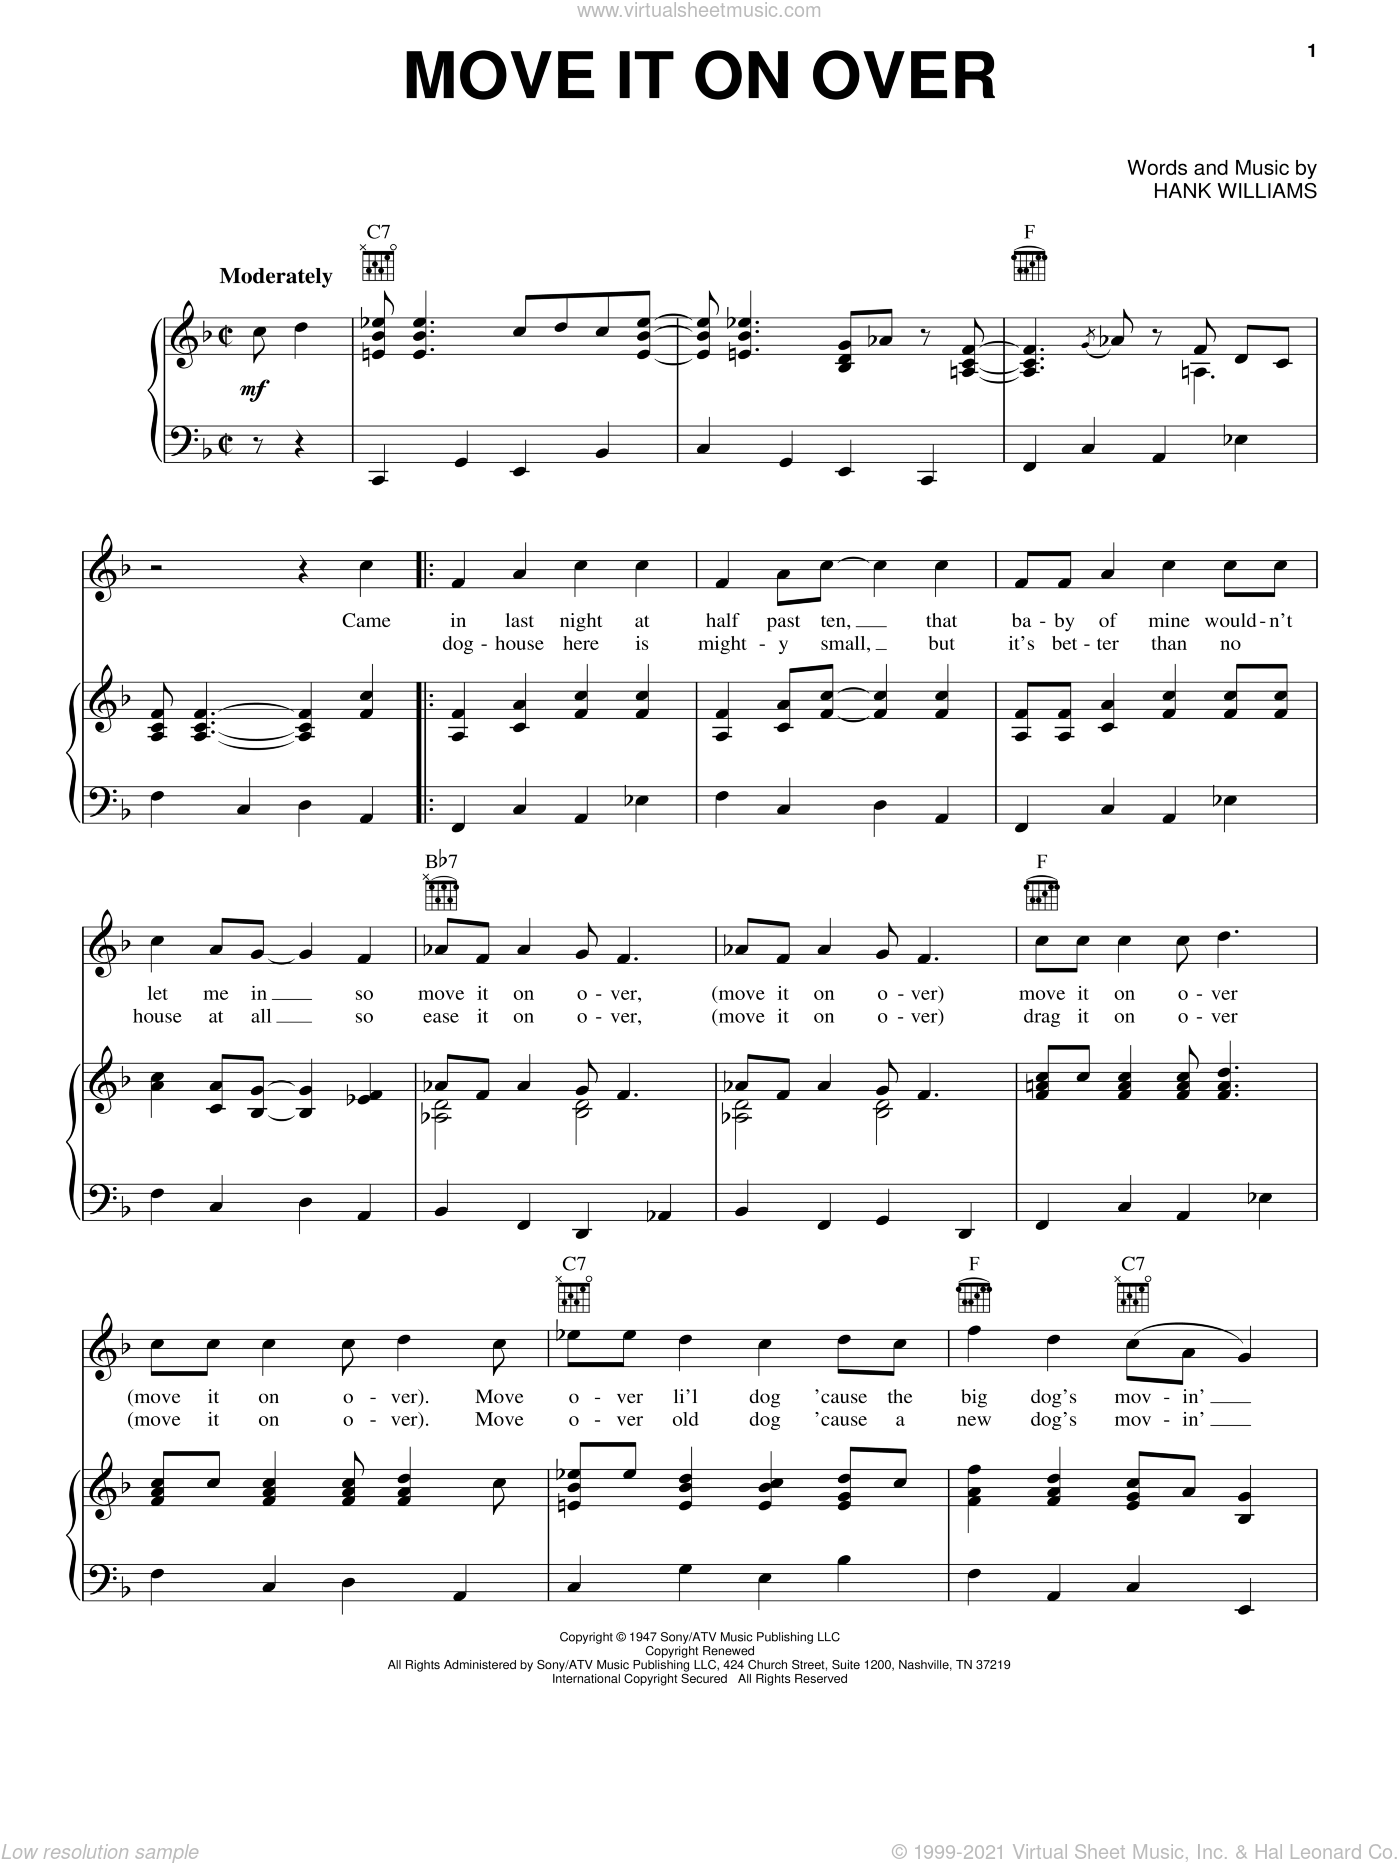 Move It On Over sheet music for voice, piano or guitar by Hank Williams